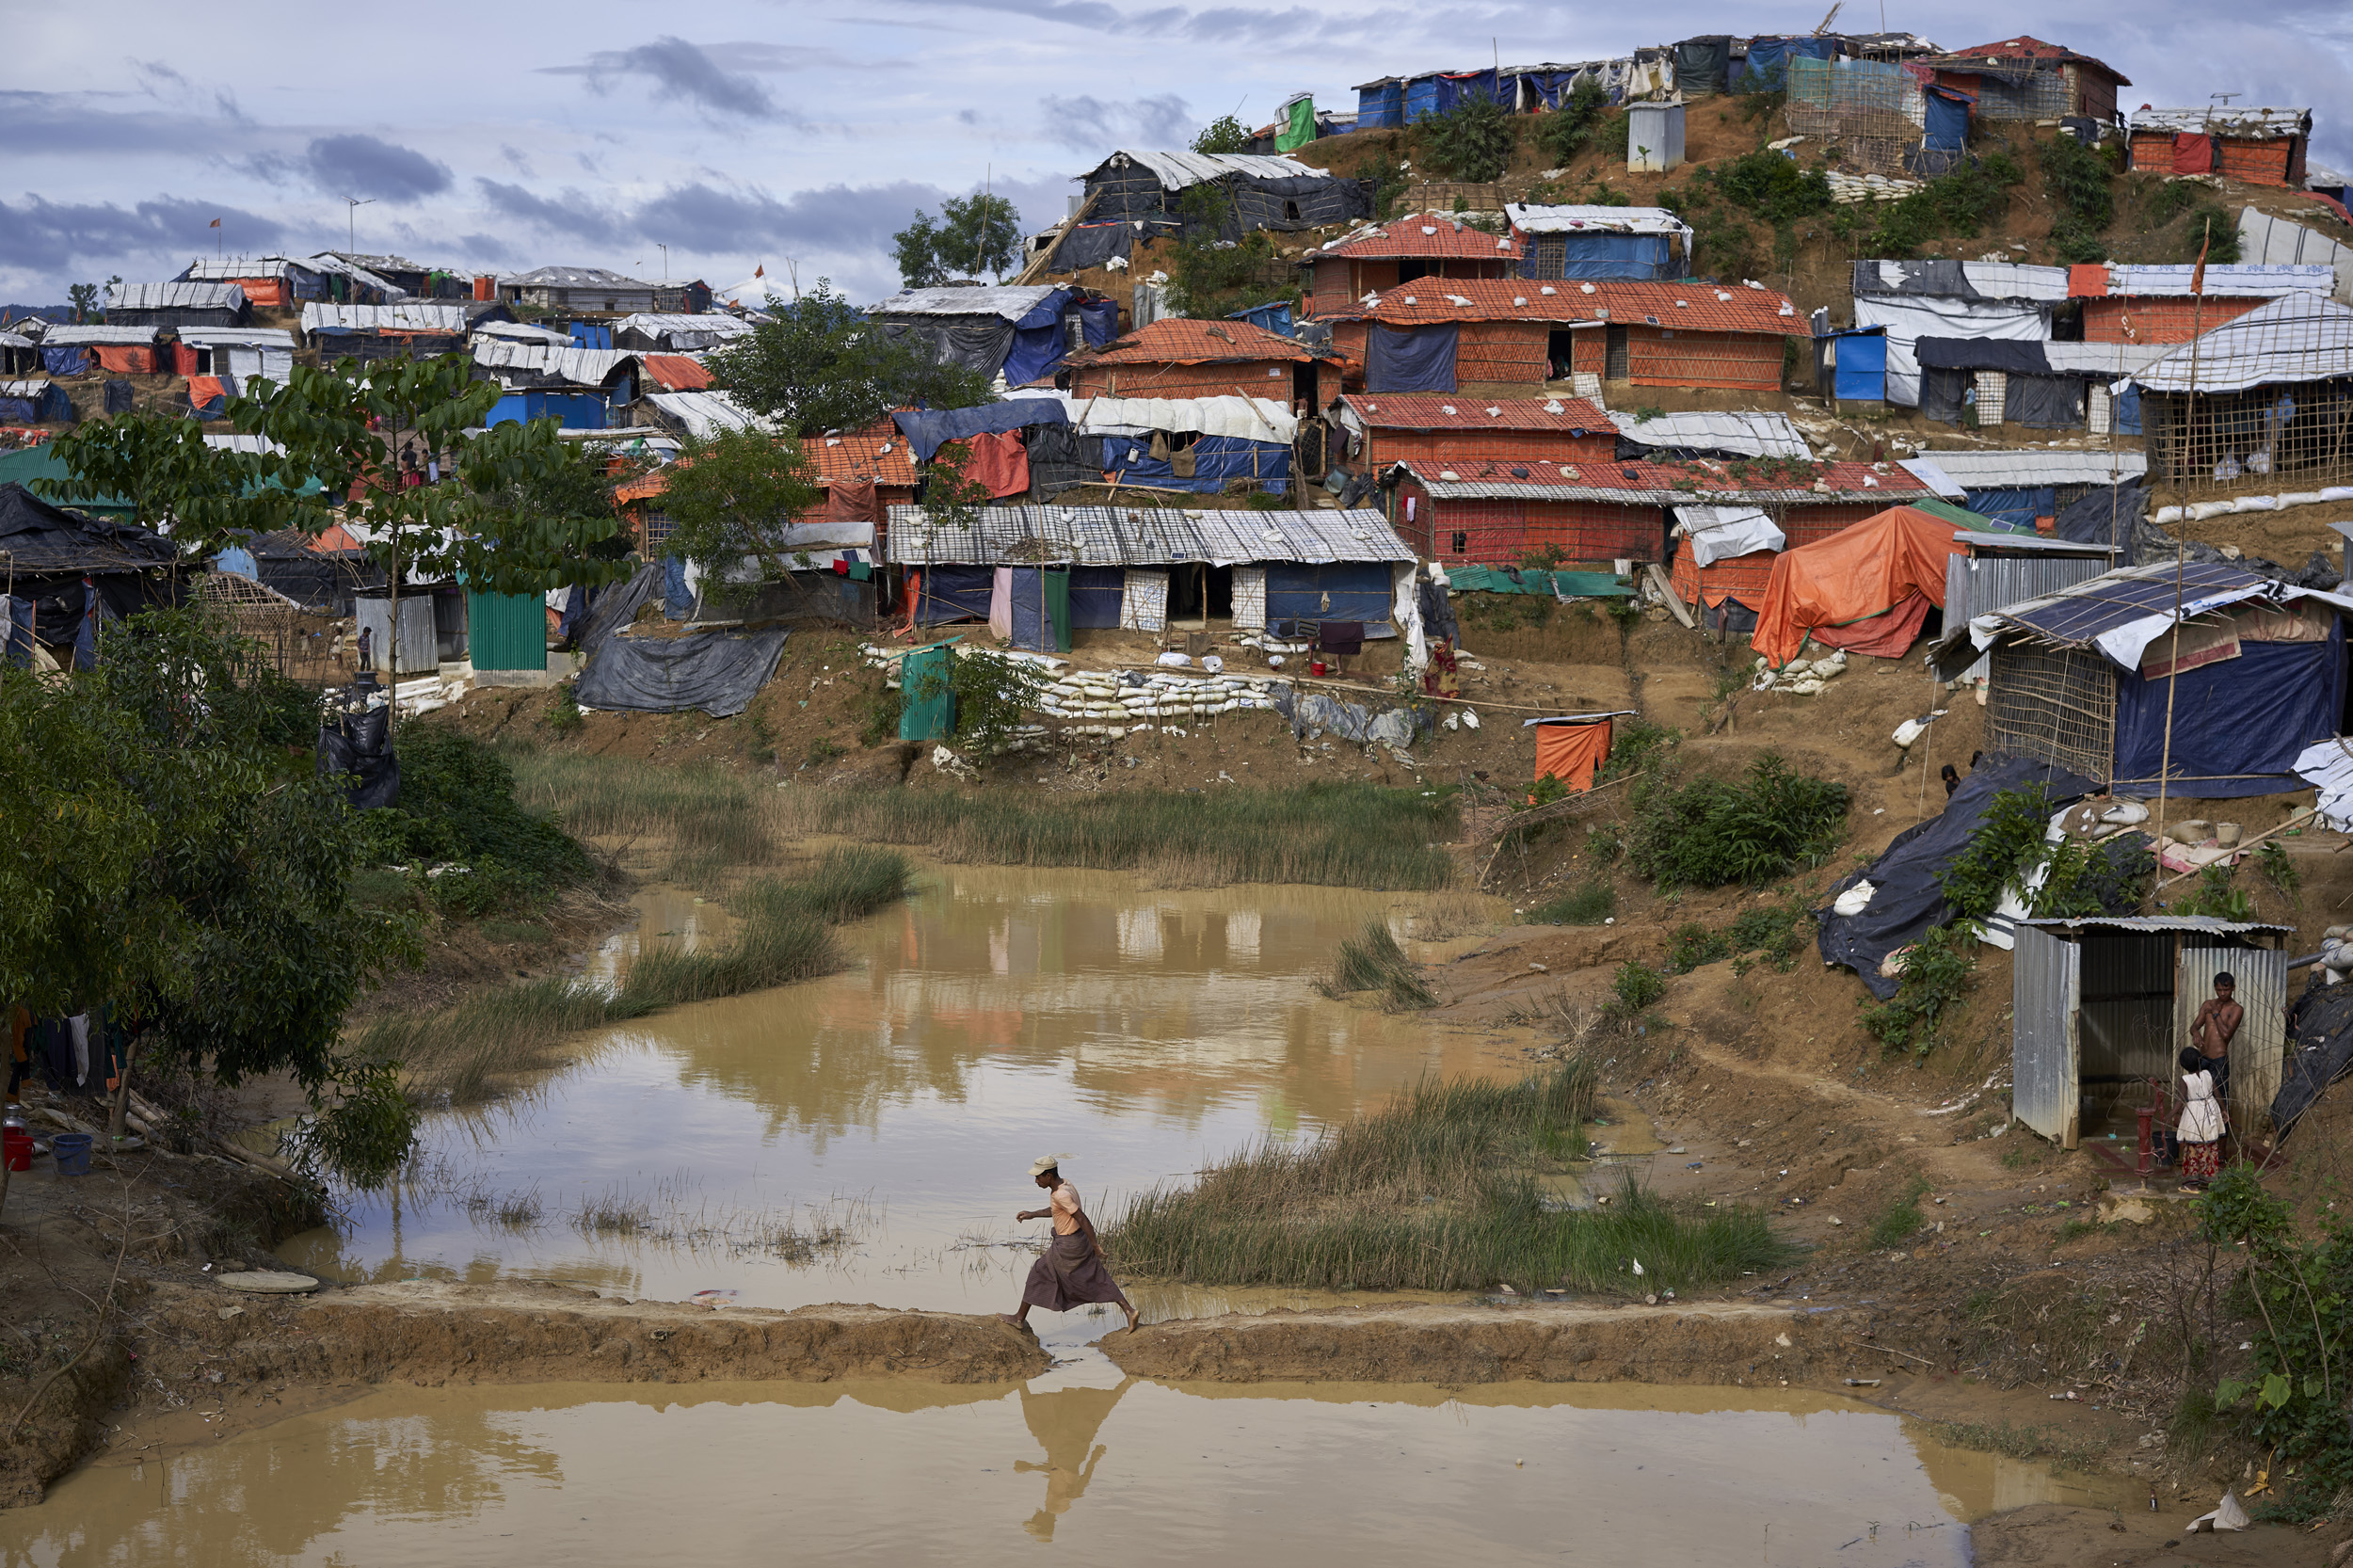 A Rohingya refugee crosses a body of water next to shelters set on a hill in Balukhali settlement for Rohingya refugees, Ukhia, Cox's Bazar District, Bangladesh.